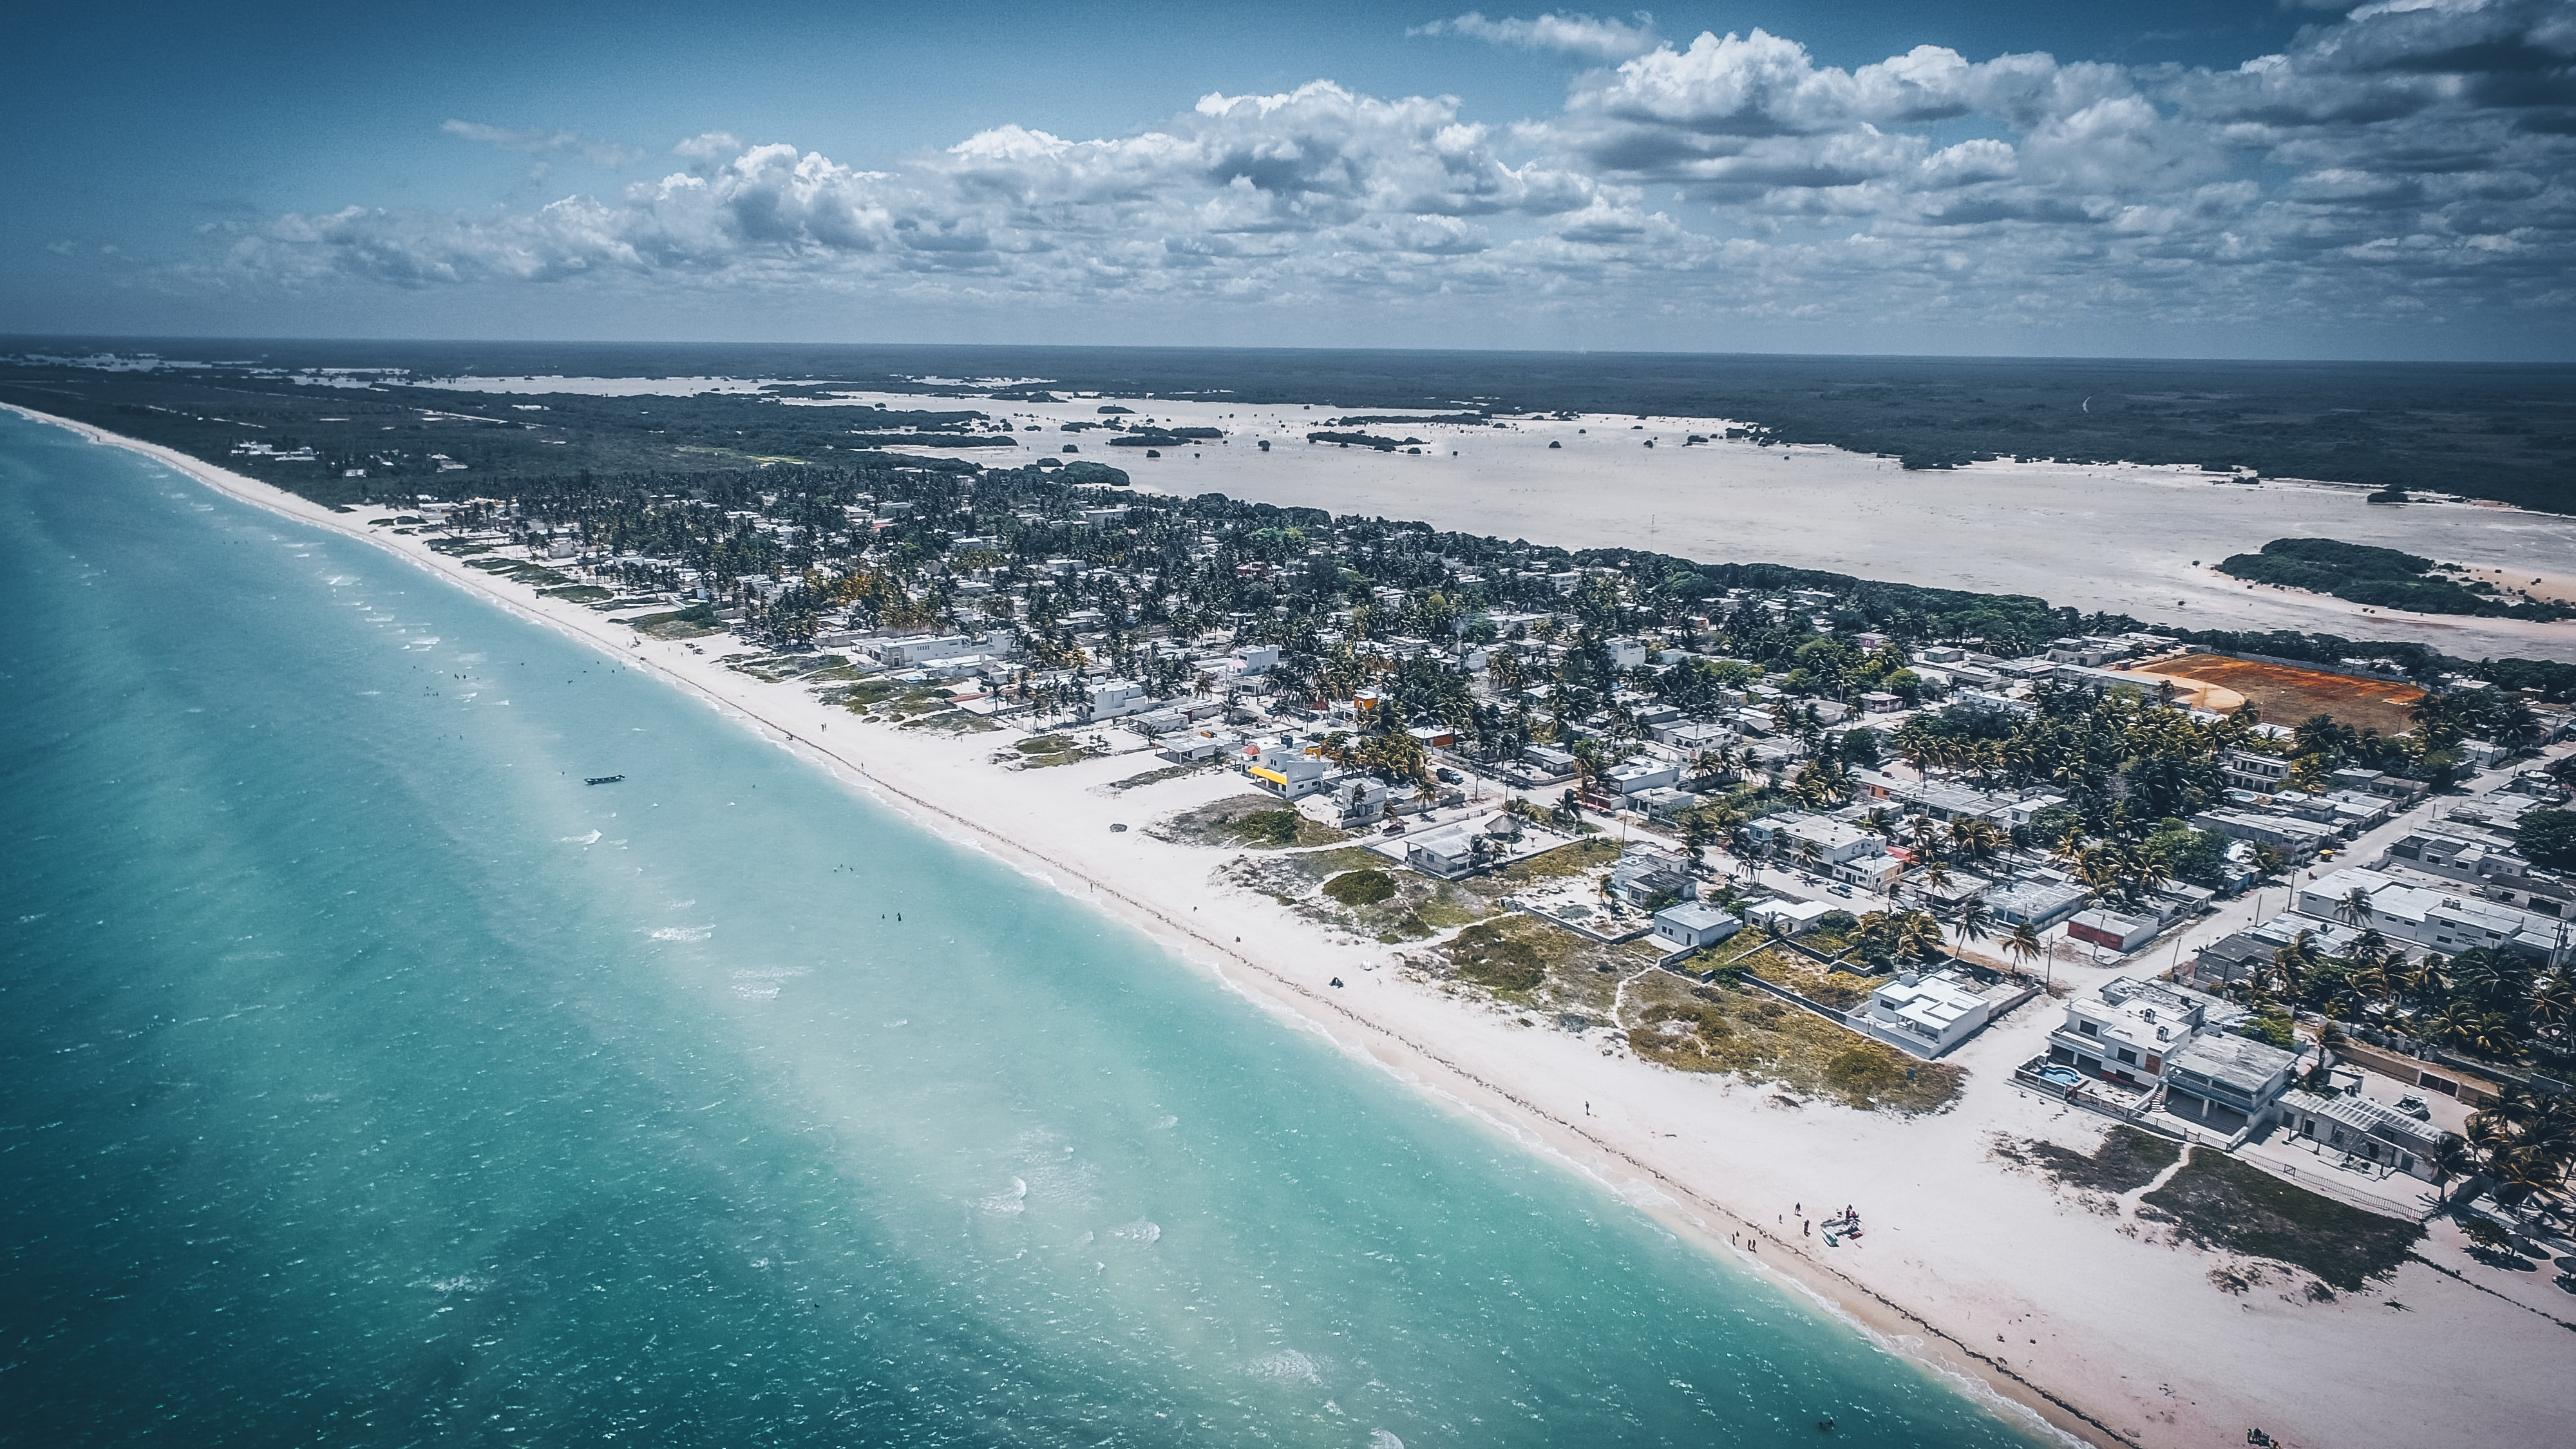 aerial view photo of white sand beach shoreline